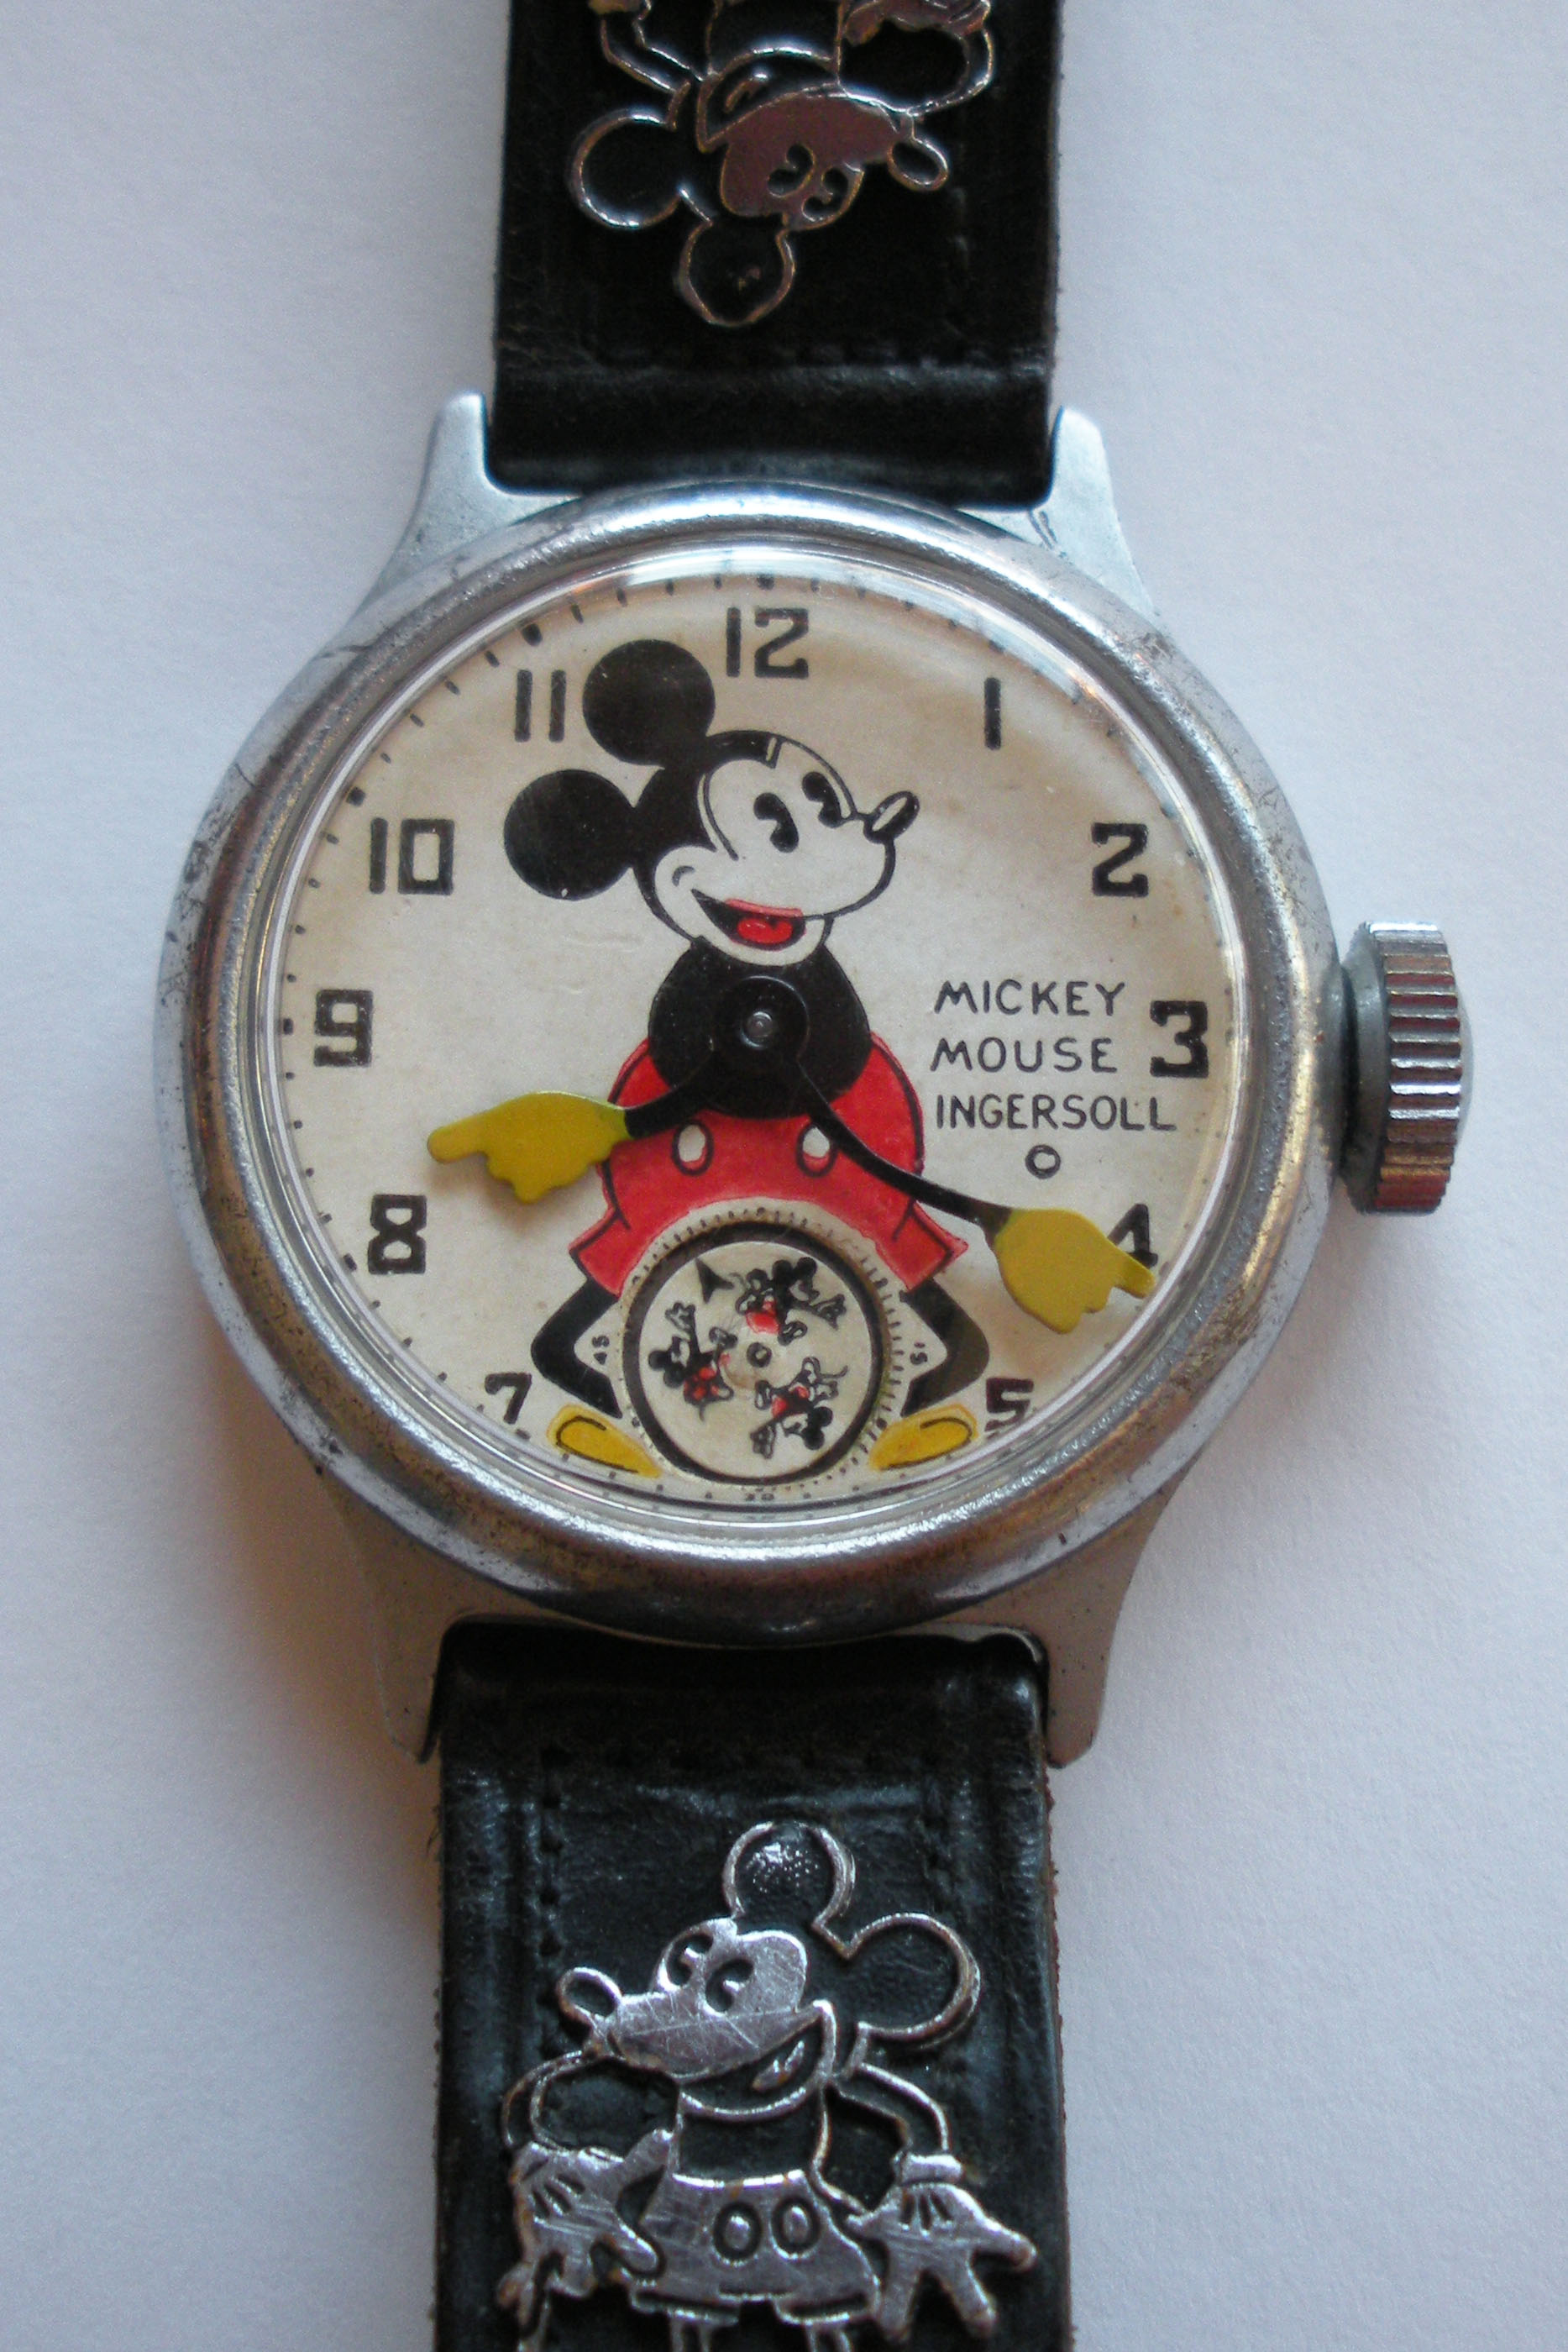 Mickey Mouse Watch Value >> A Rare Antique Shop Find A 1934 Ingersoll Mickey Mouse